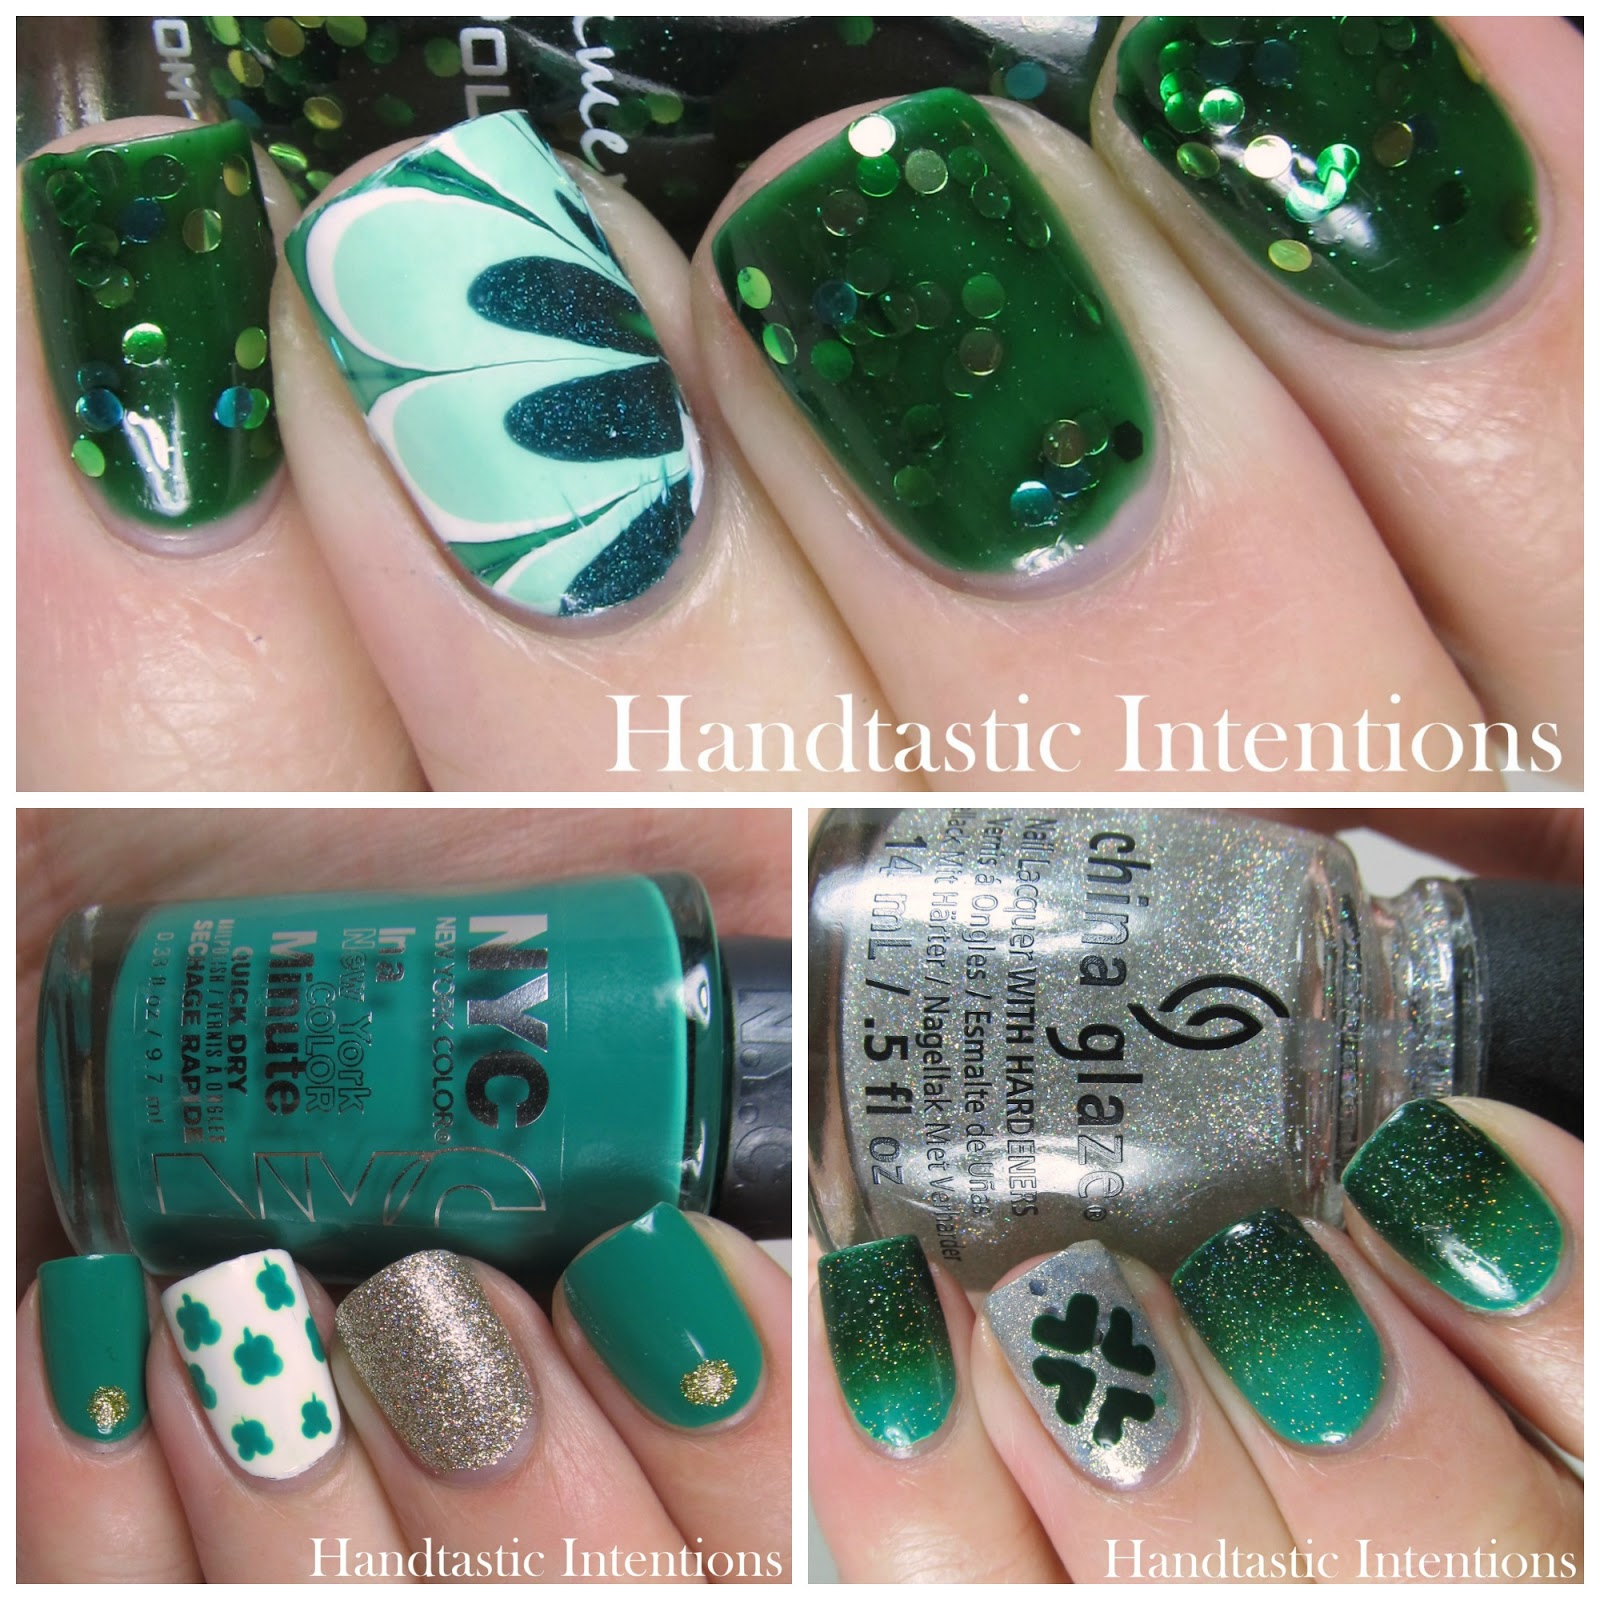 Handtastic Intentions: Three Nail Art Designs for St. Patrick\'s Day